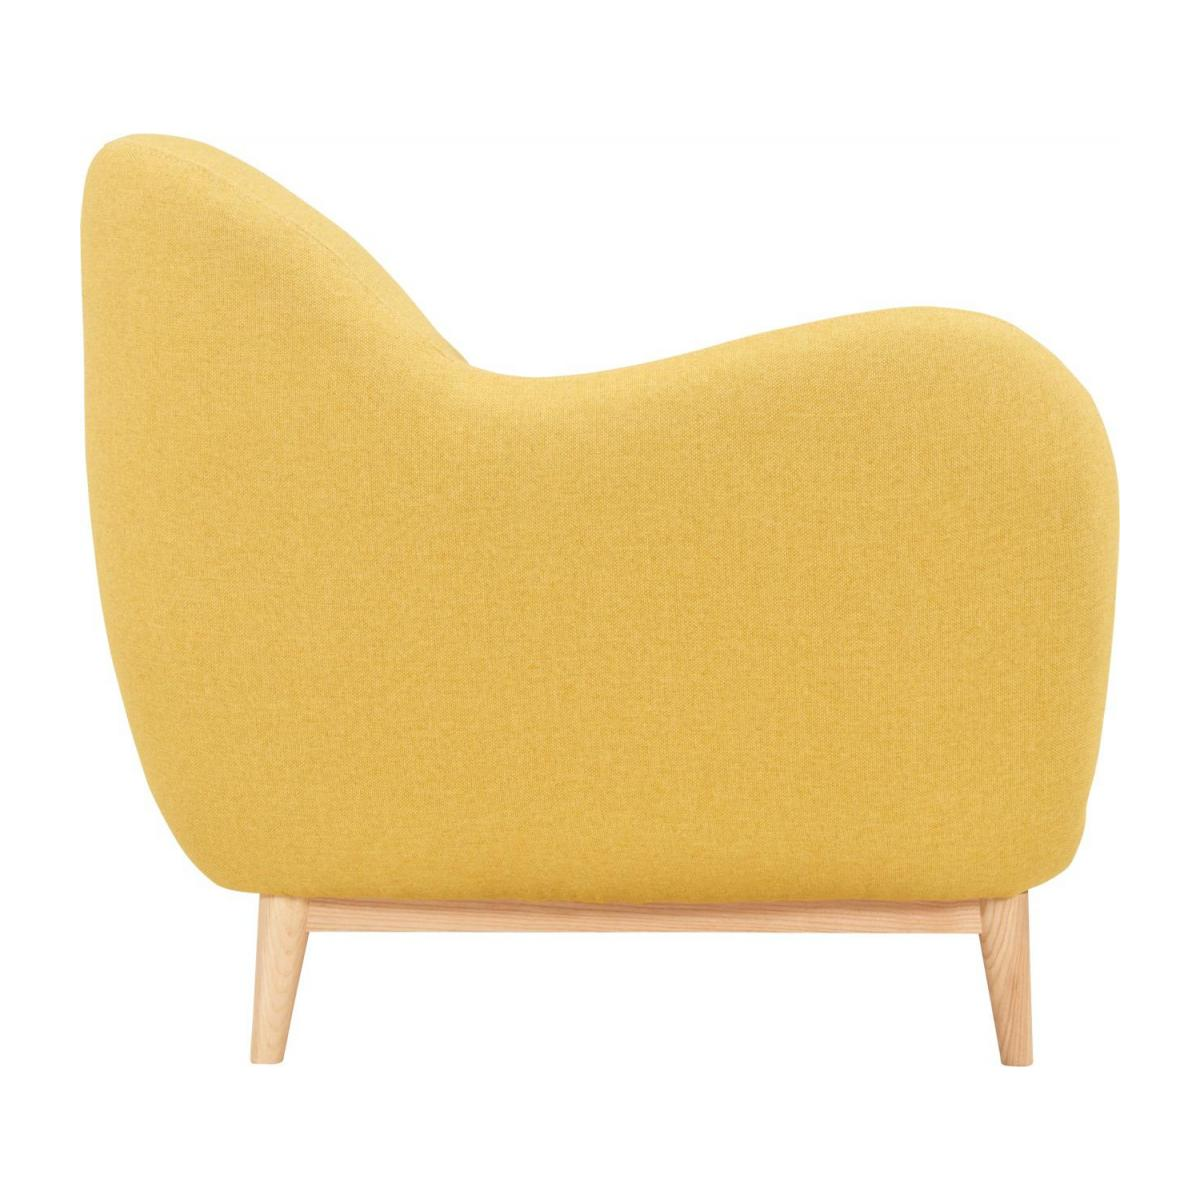 3-seat sofa made of fabric, yellow n°4